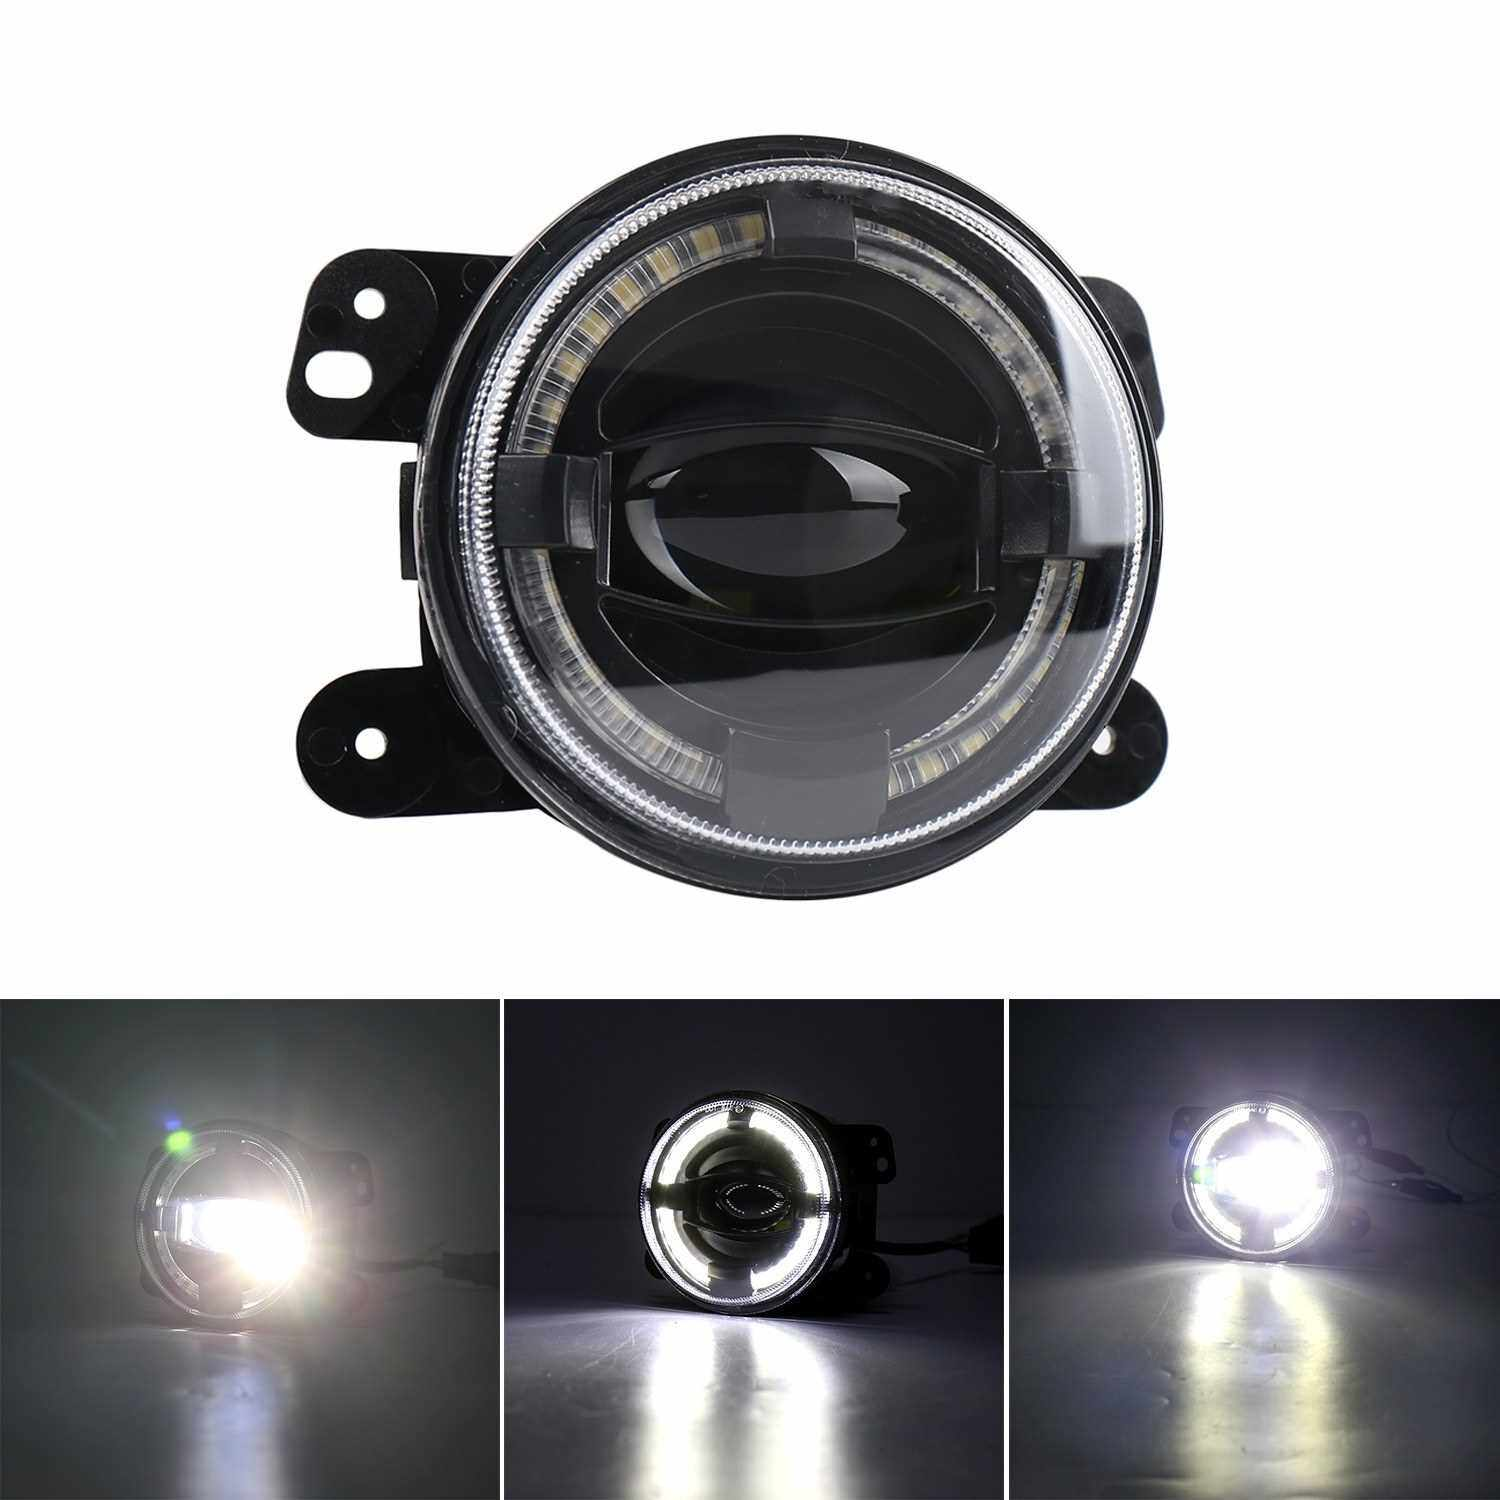 Best Selling 2pcs 30W 12V LED Car Fog Lights Driving Offroad Lamp Front Bumper Light Replacement for Jeep Wrangler 1997-2017 (Standard)